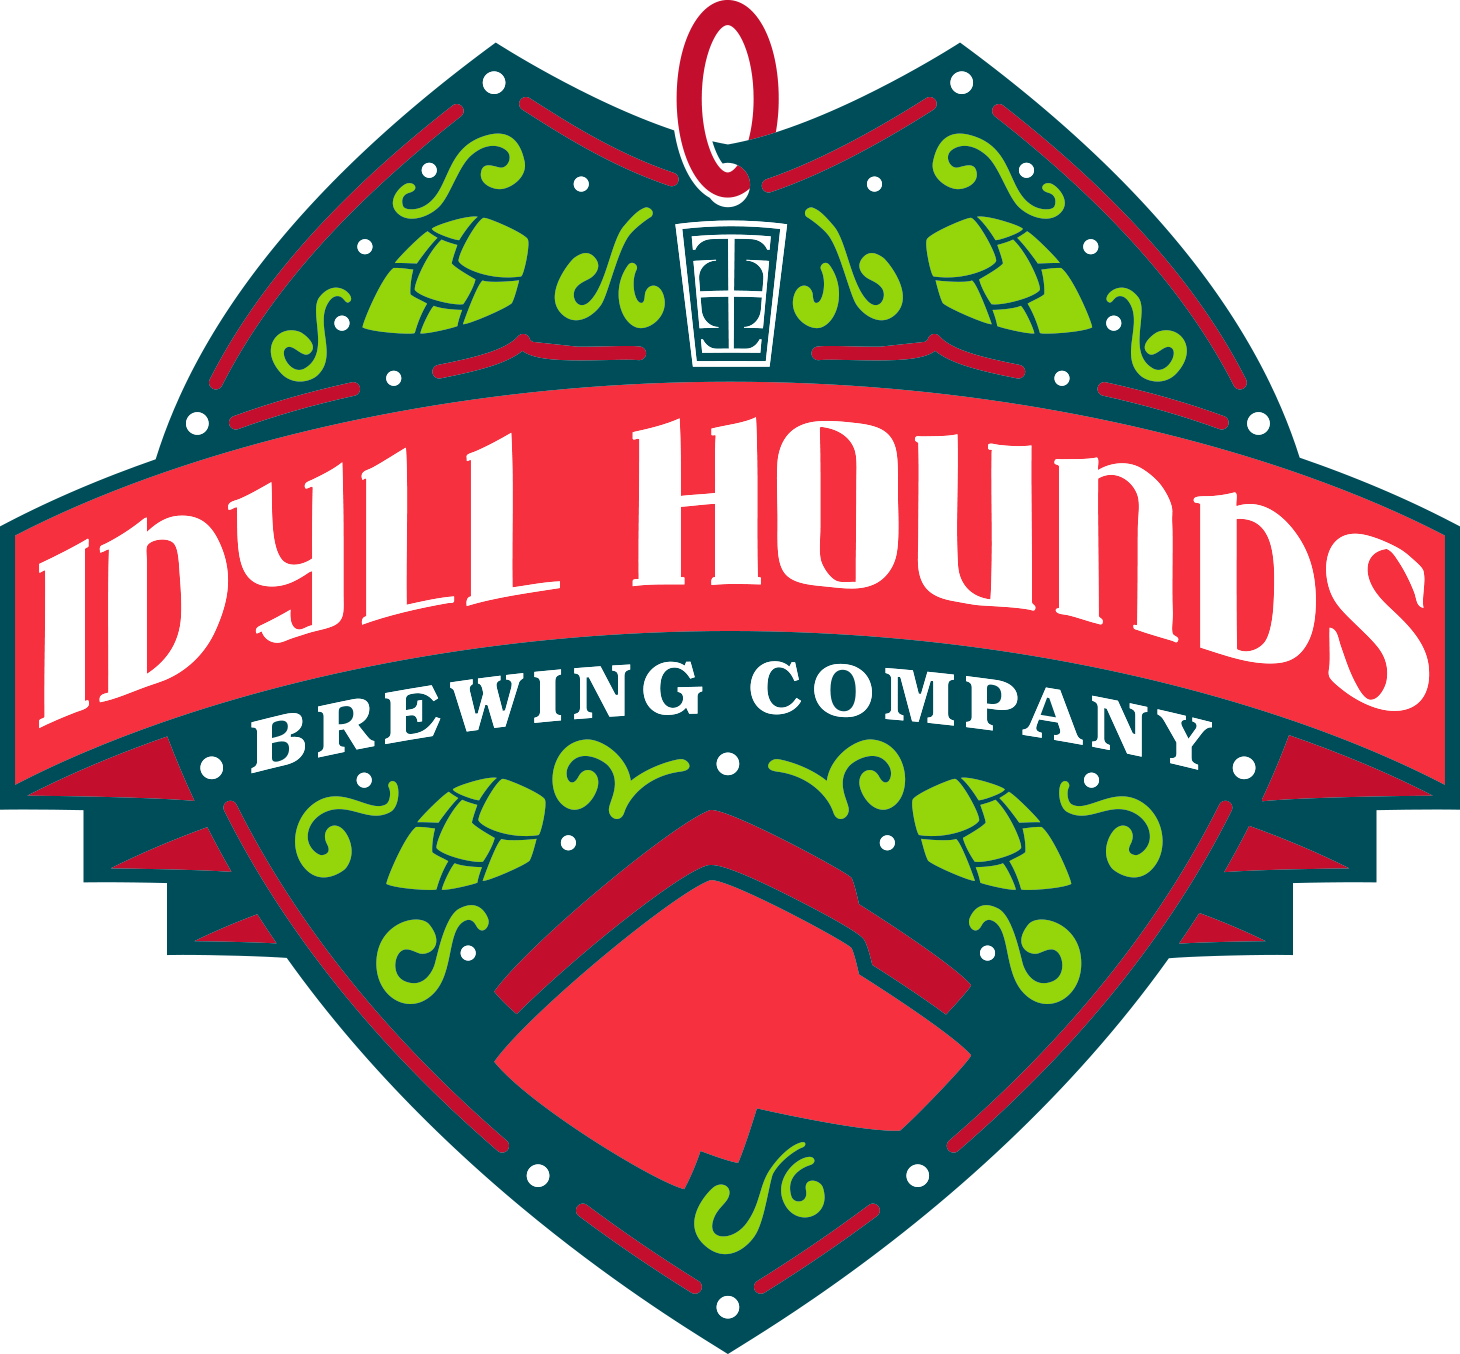 Idyll Hounds Brewing Company